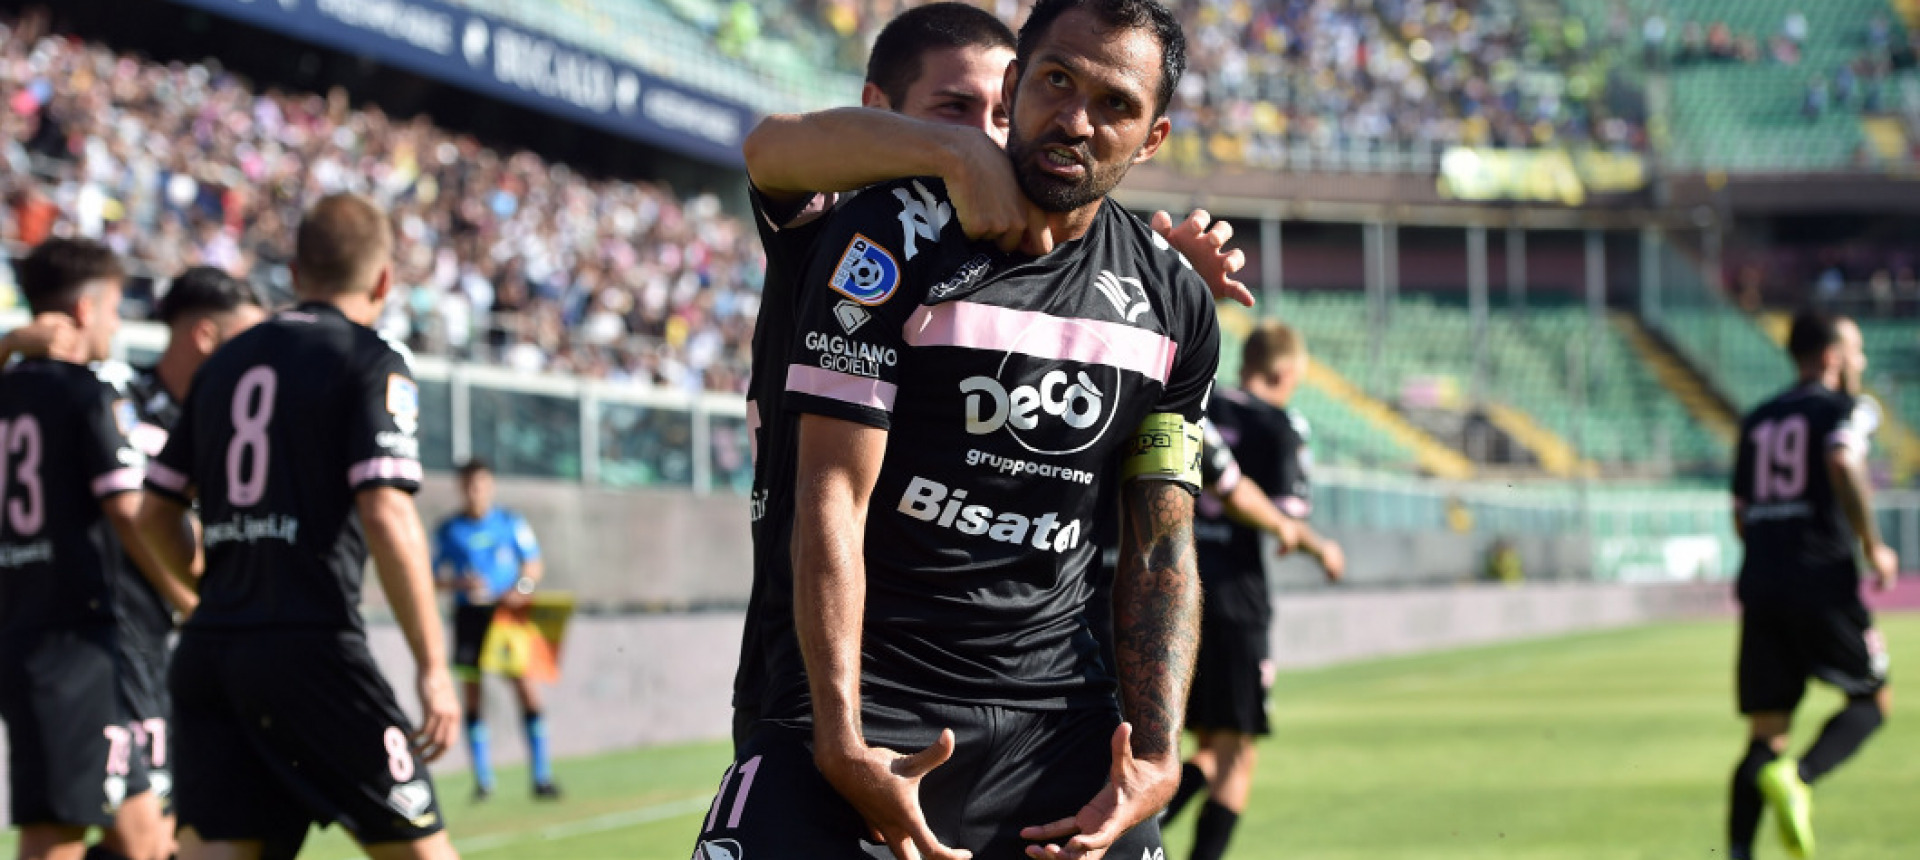 IT IS THE VICTORY OF ALL PEOPLE OF PALERMO. ALL TEAMMATES RENOUNCE THEIR SEASONAL REWARD